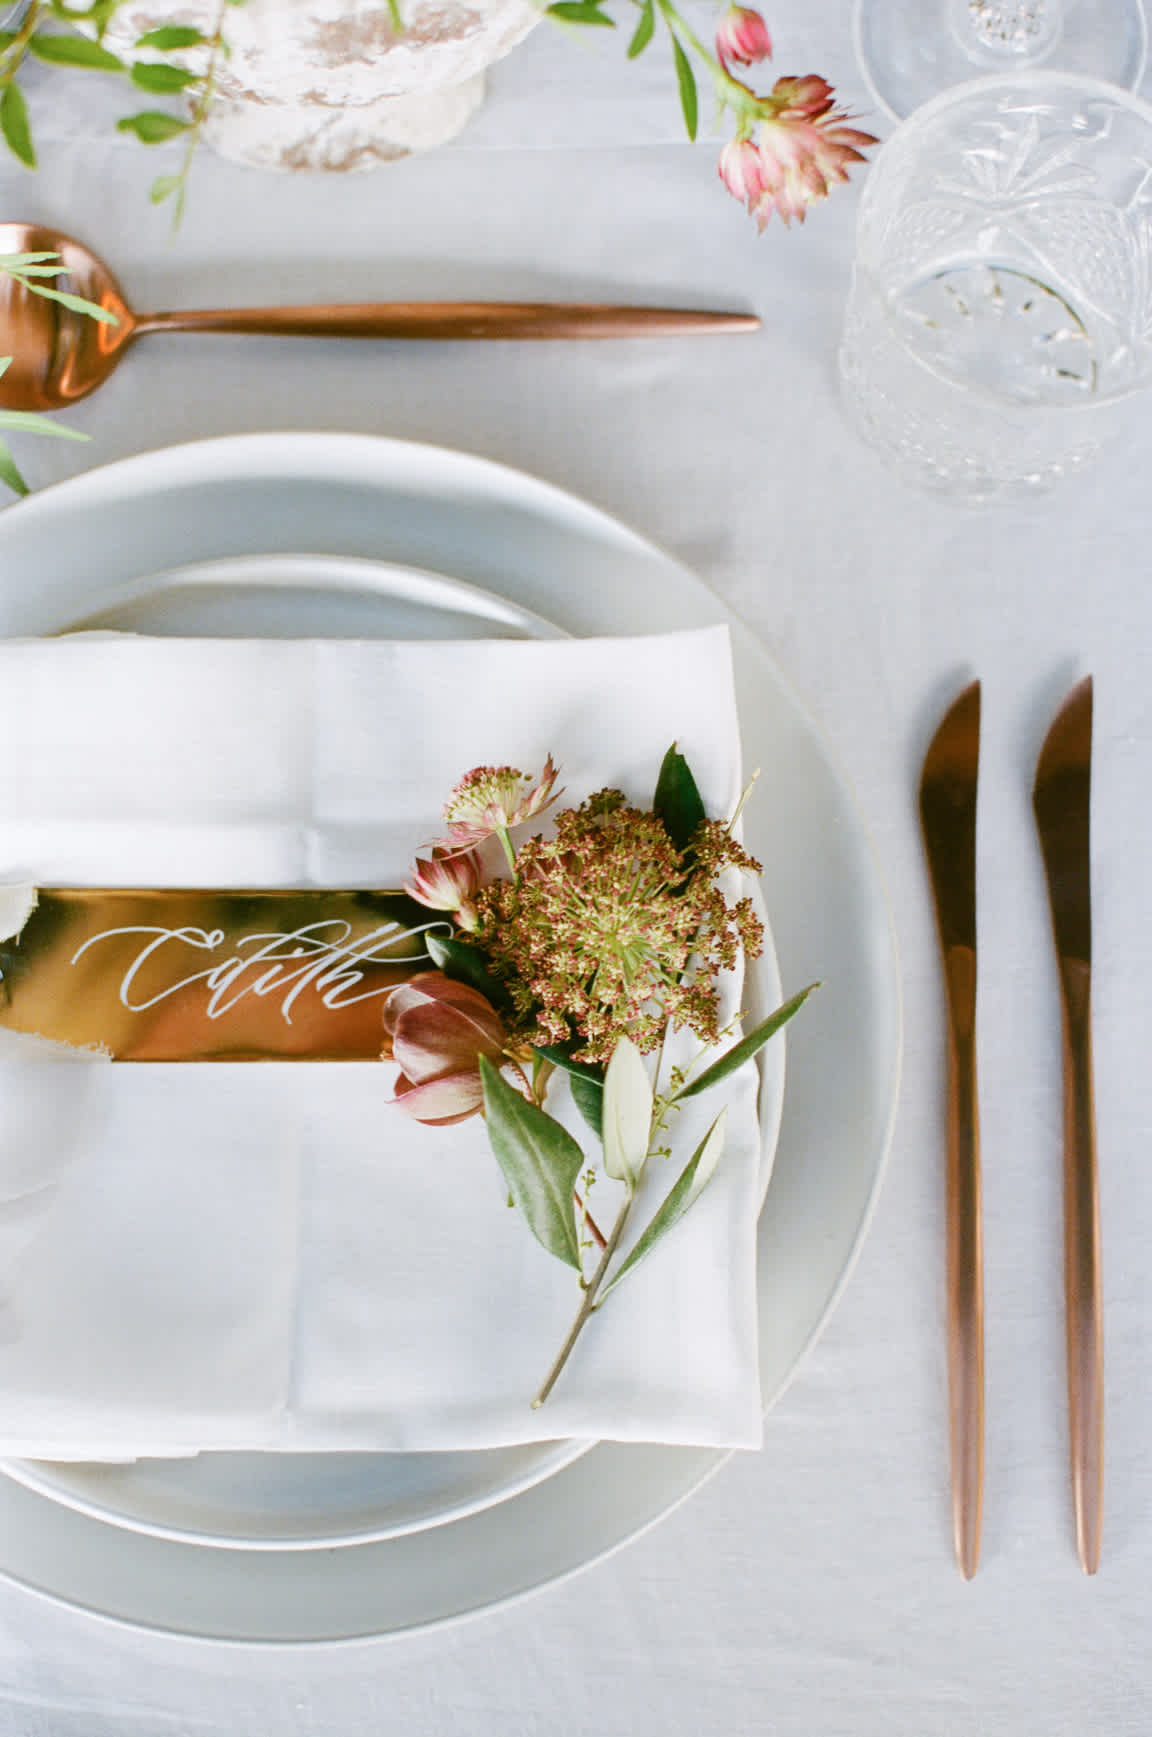 A top-down view of table setting with plates, knives, spoons, napkins, drink glasses, and a floral arrangement.